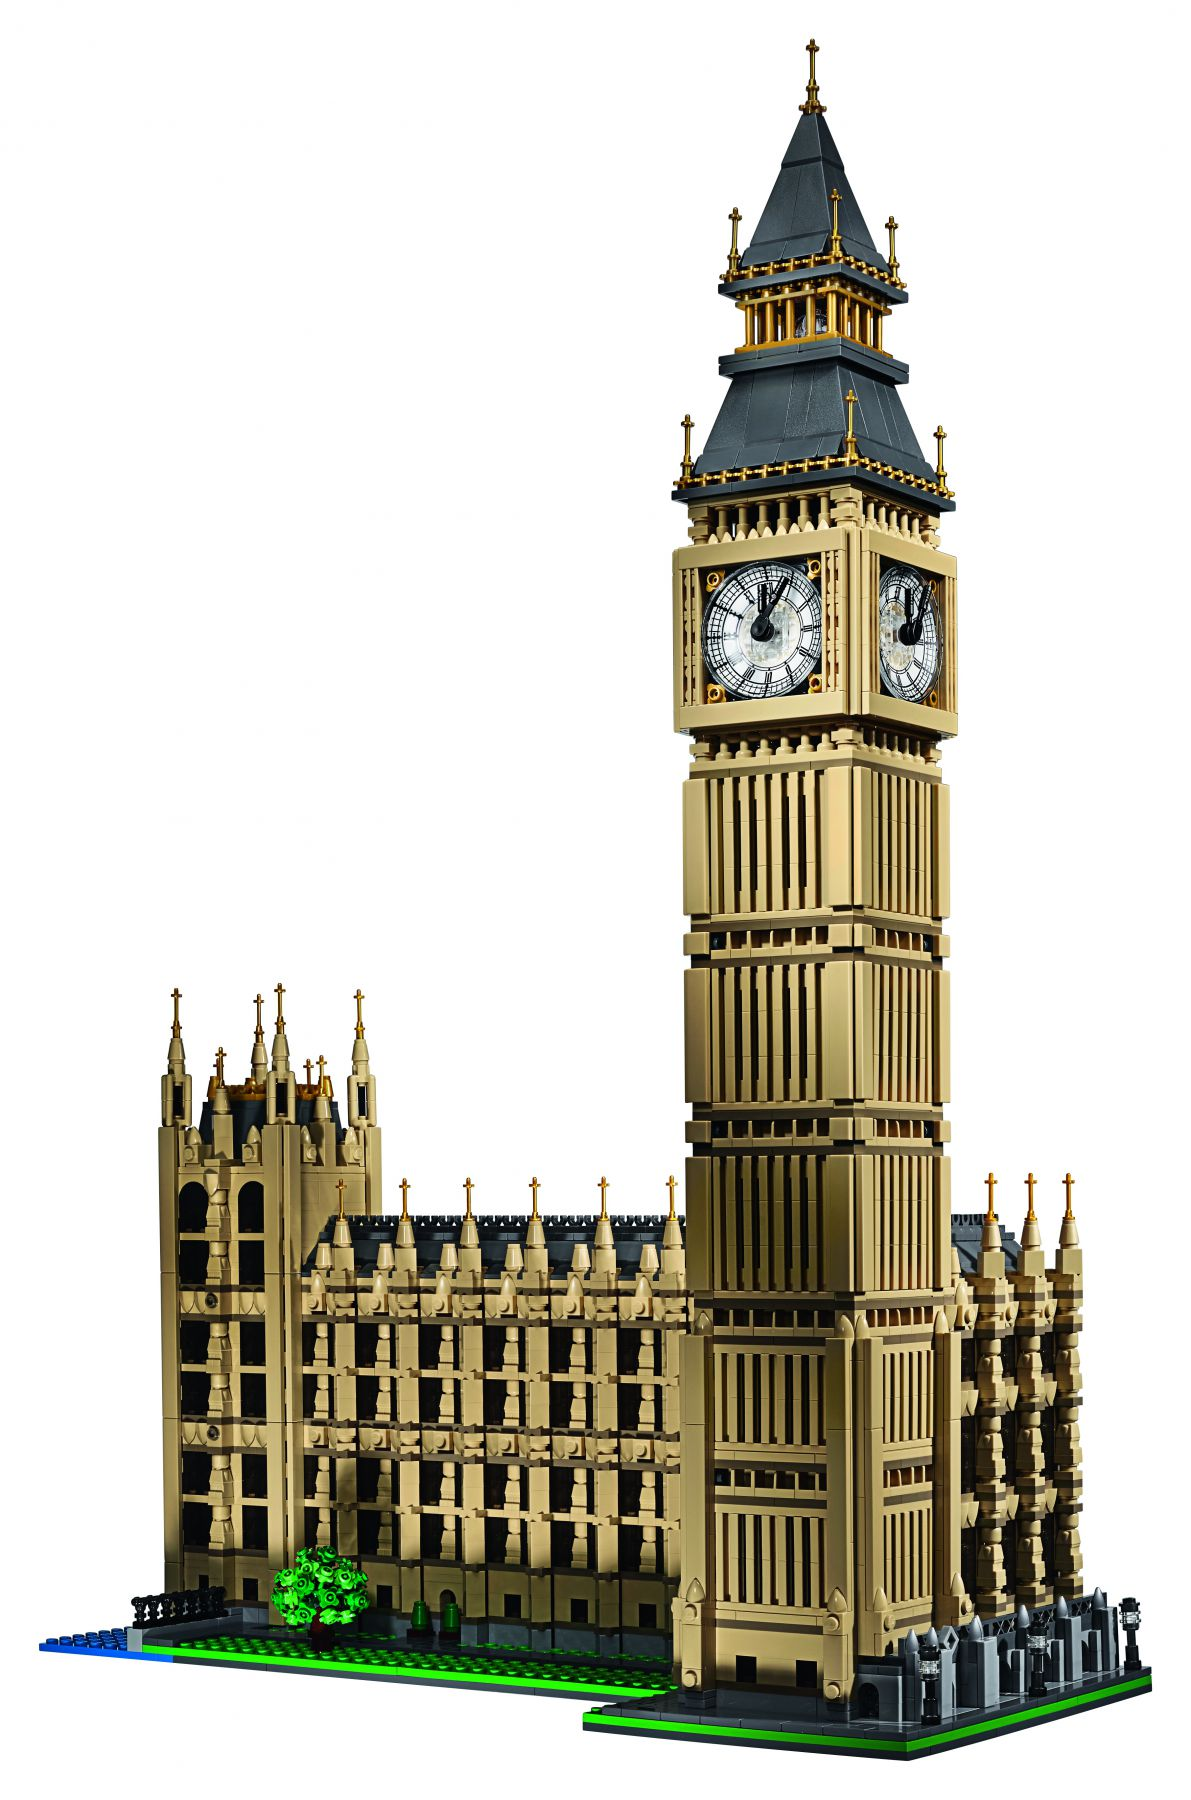 LEGO Advanced Models 10253 Big Ben LEGO_Creator_Big_Ben_10253-8.jpg